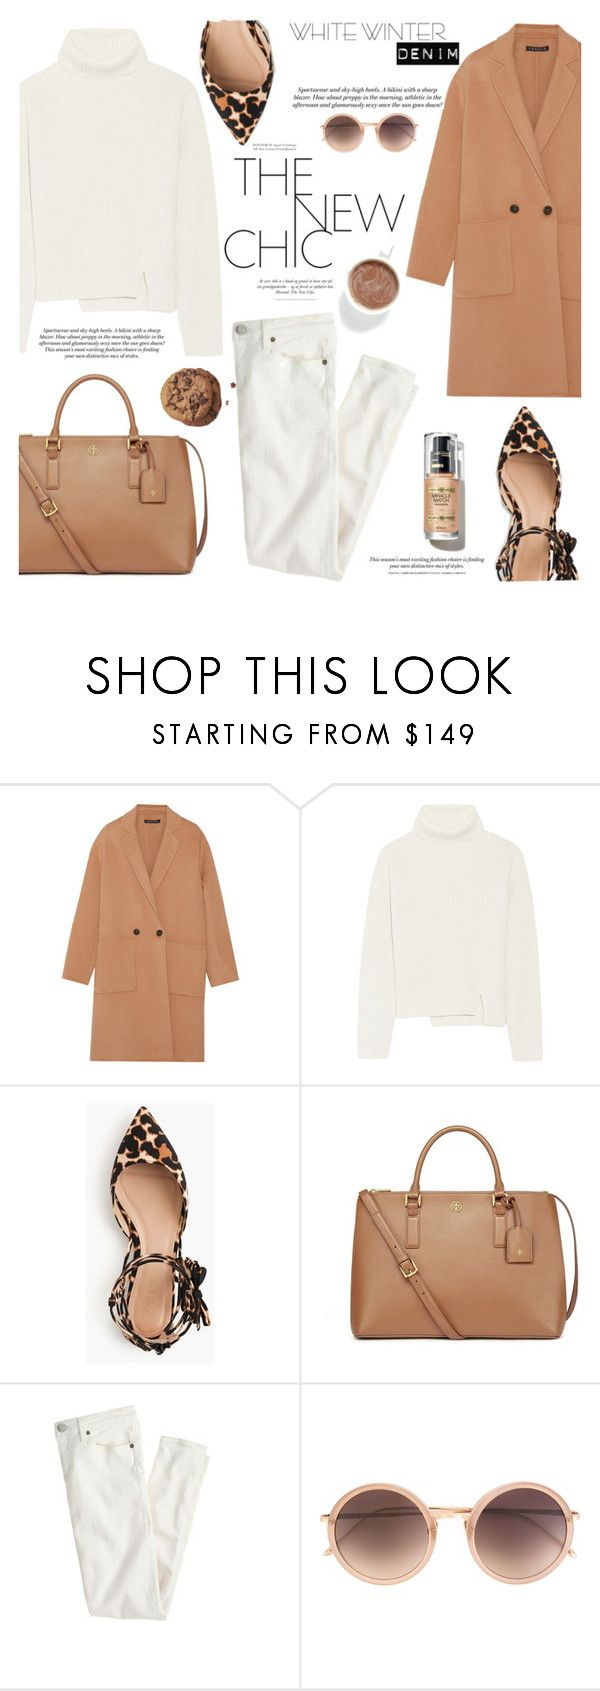 """""""Untitled #310"""" by lily1lol ❤ liked on Polyvore featuring Theory, Proenza Schouler, J.Crew, Tory Burch, H&M, Linda Farrow and winterwhite"""